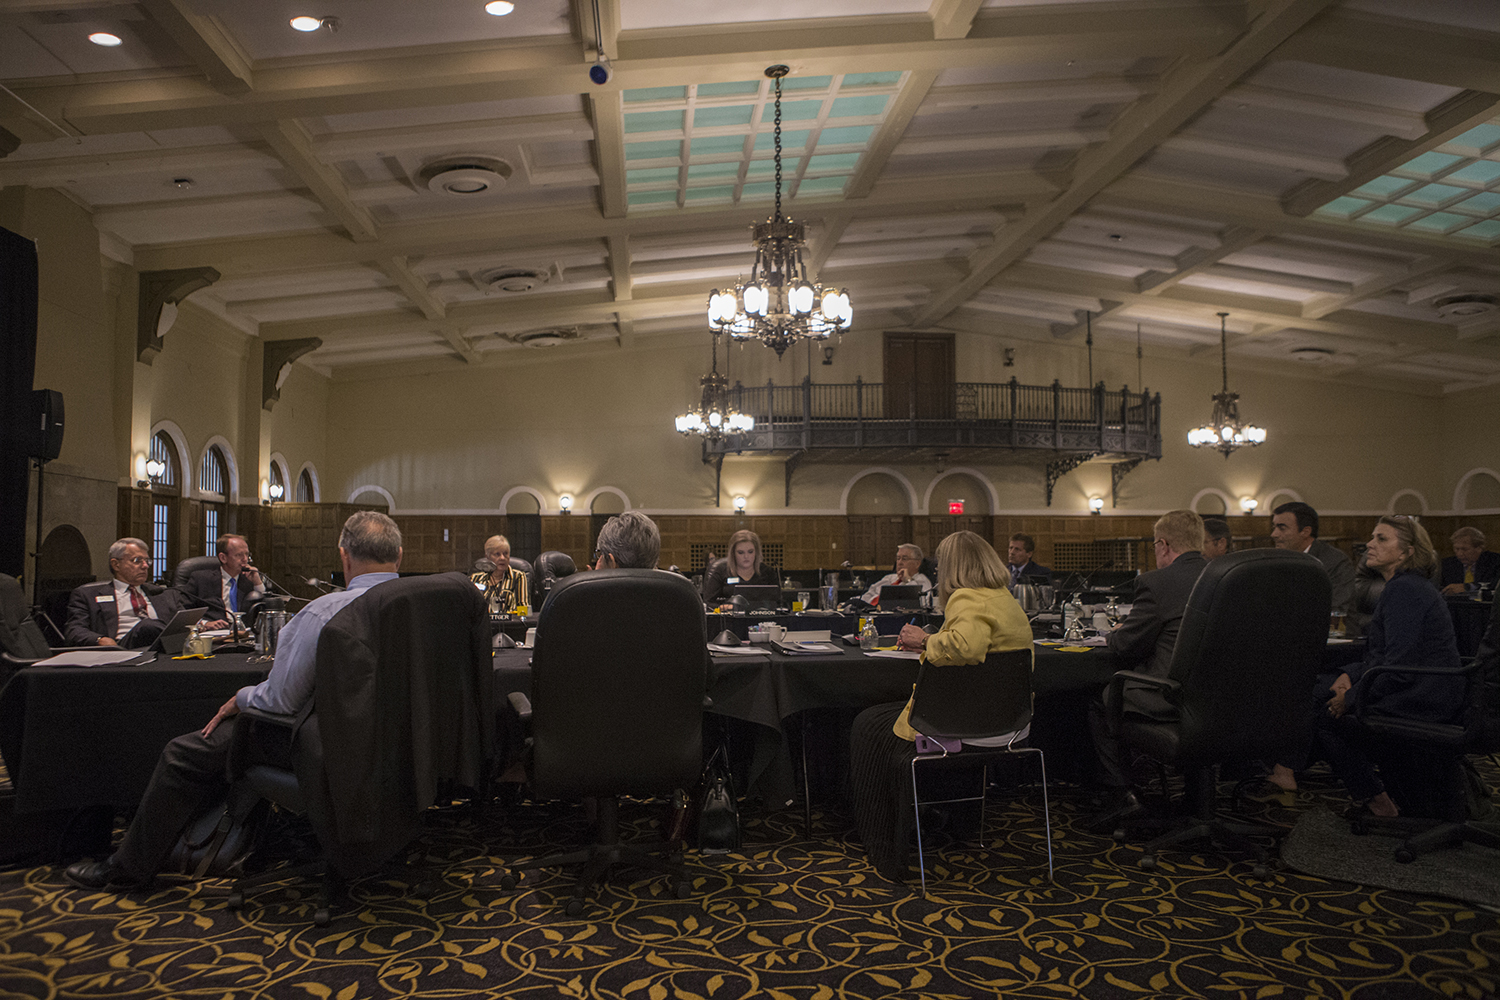 Regents listen during the state Board of Regents meeting on Sept. 12, 2018 in the IMU Main Lounge.